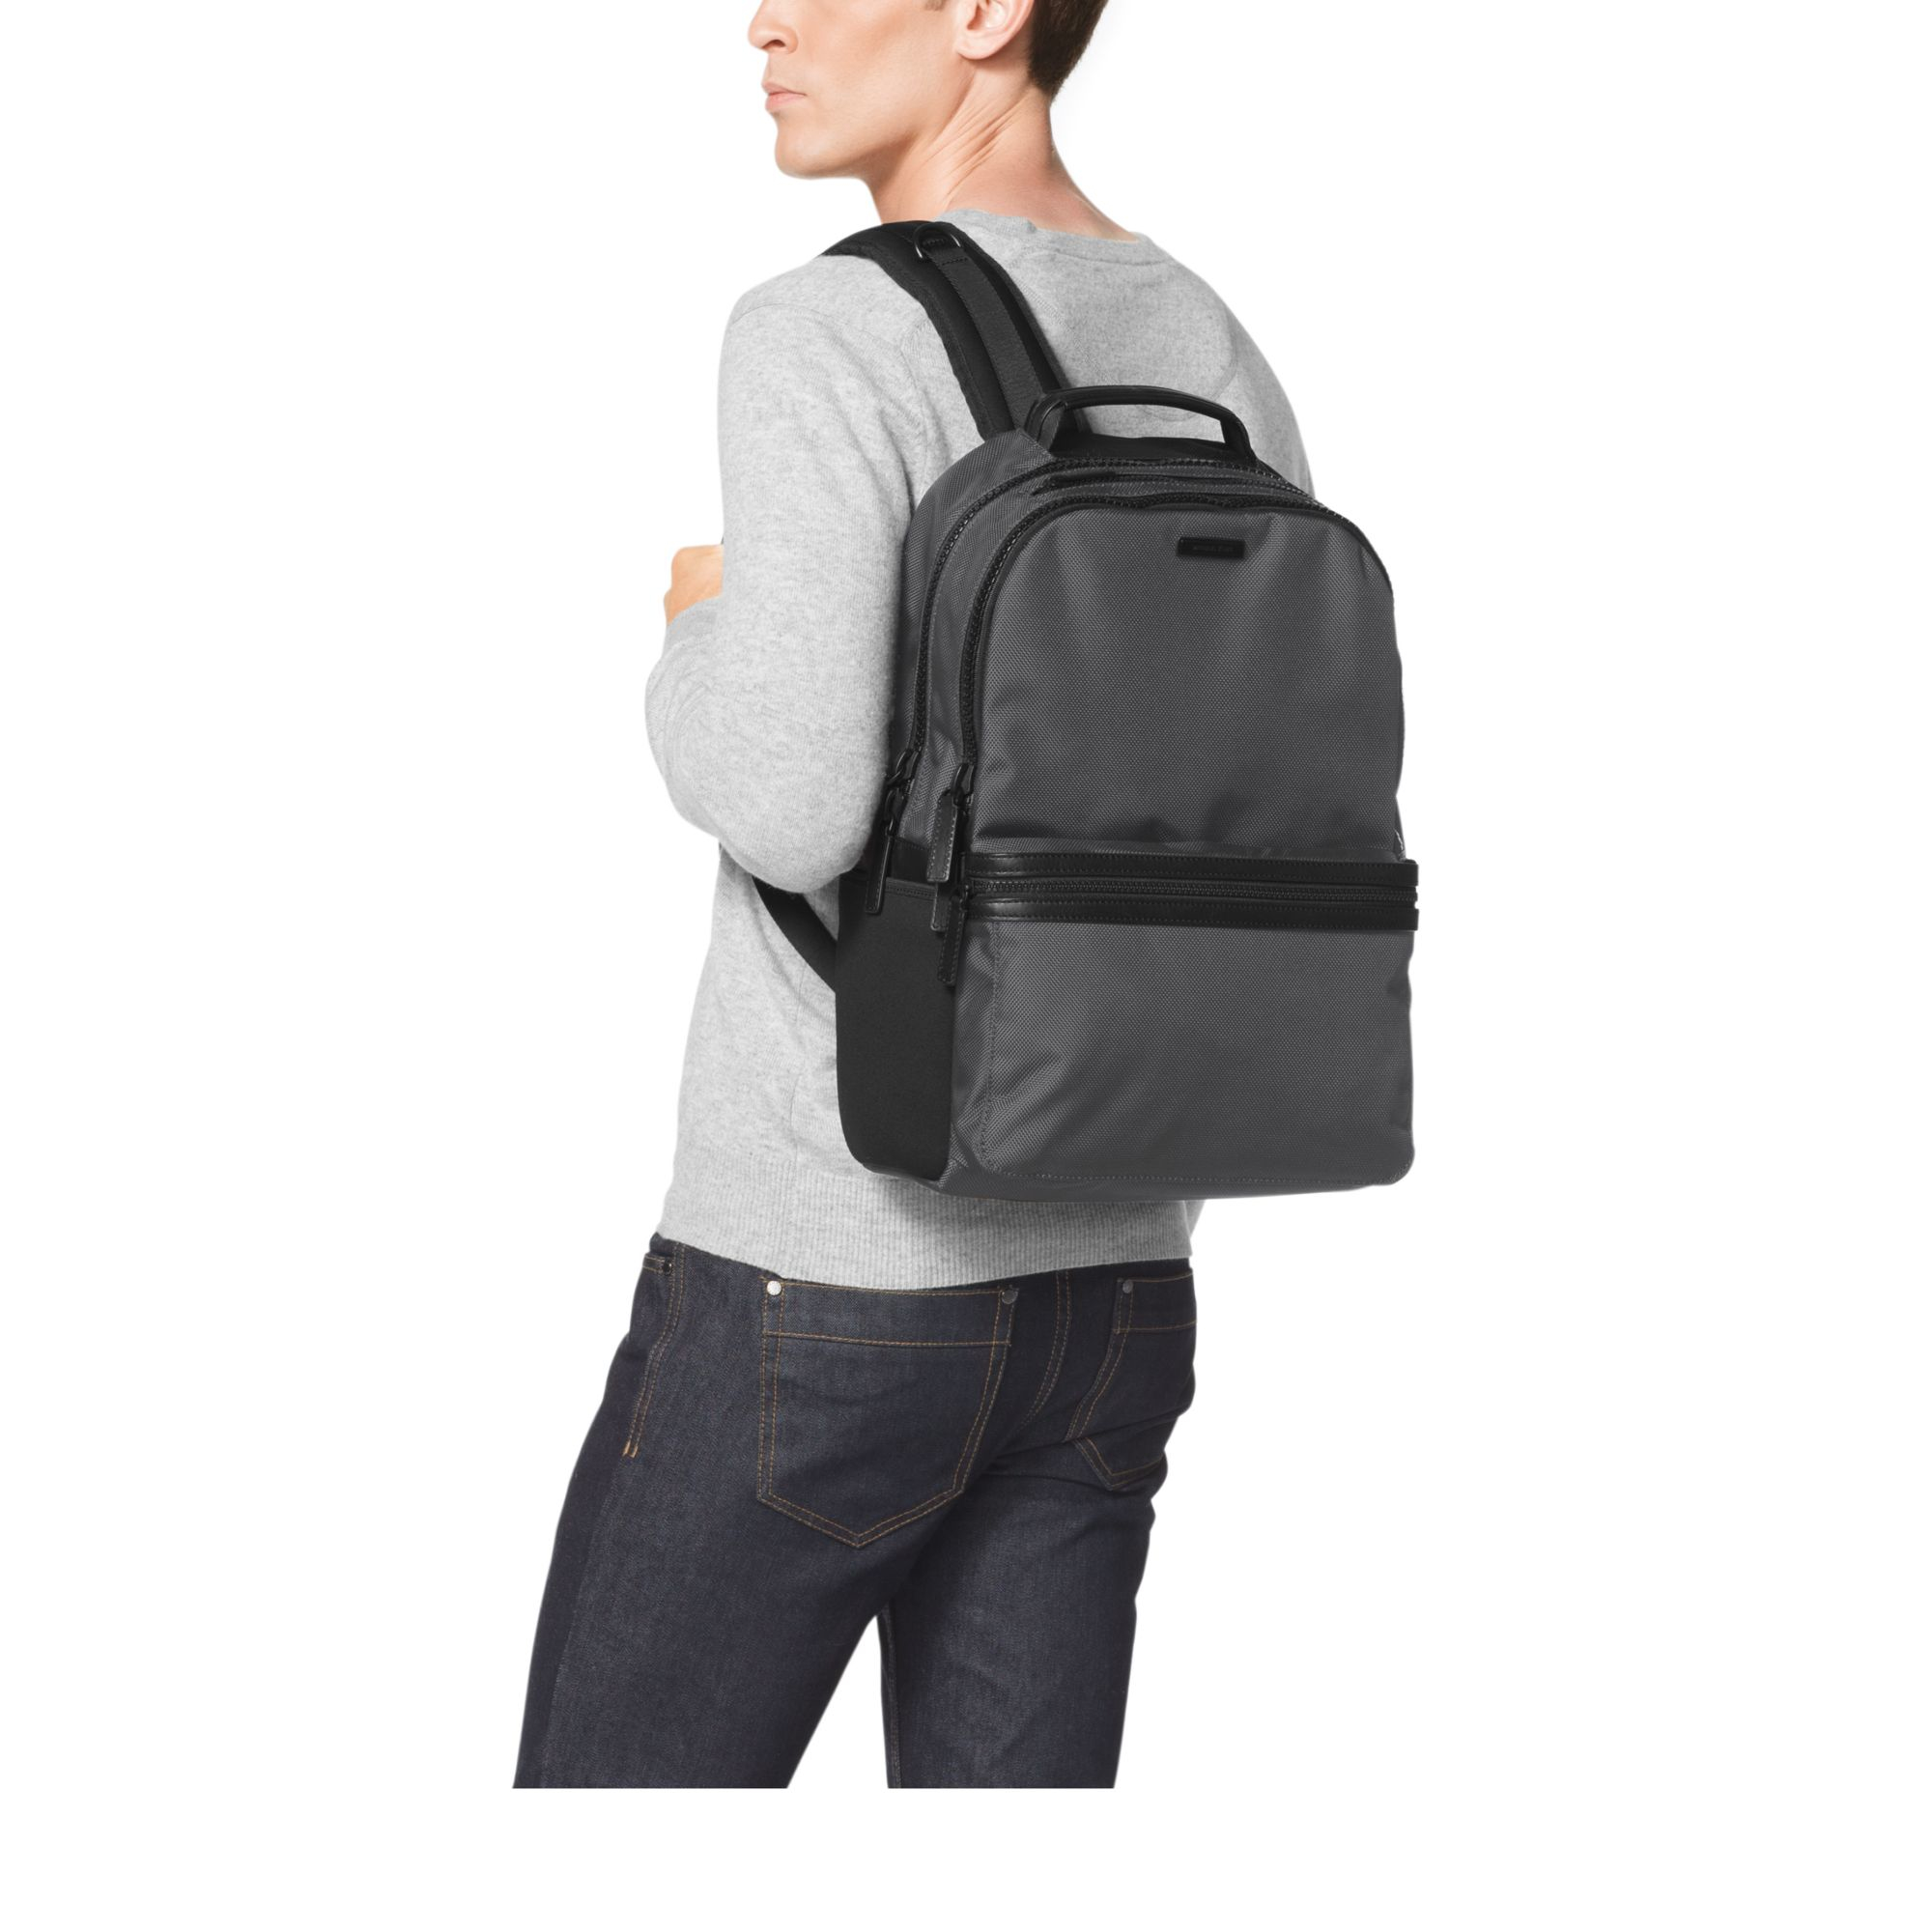 88ea5b8fd5ff Michael Kors Parker Nylon Backpack in Gray for Men - Lyst